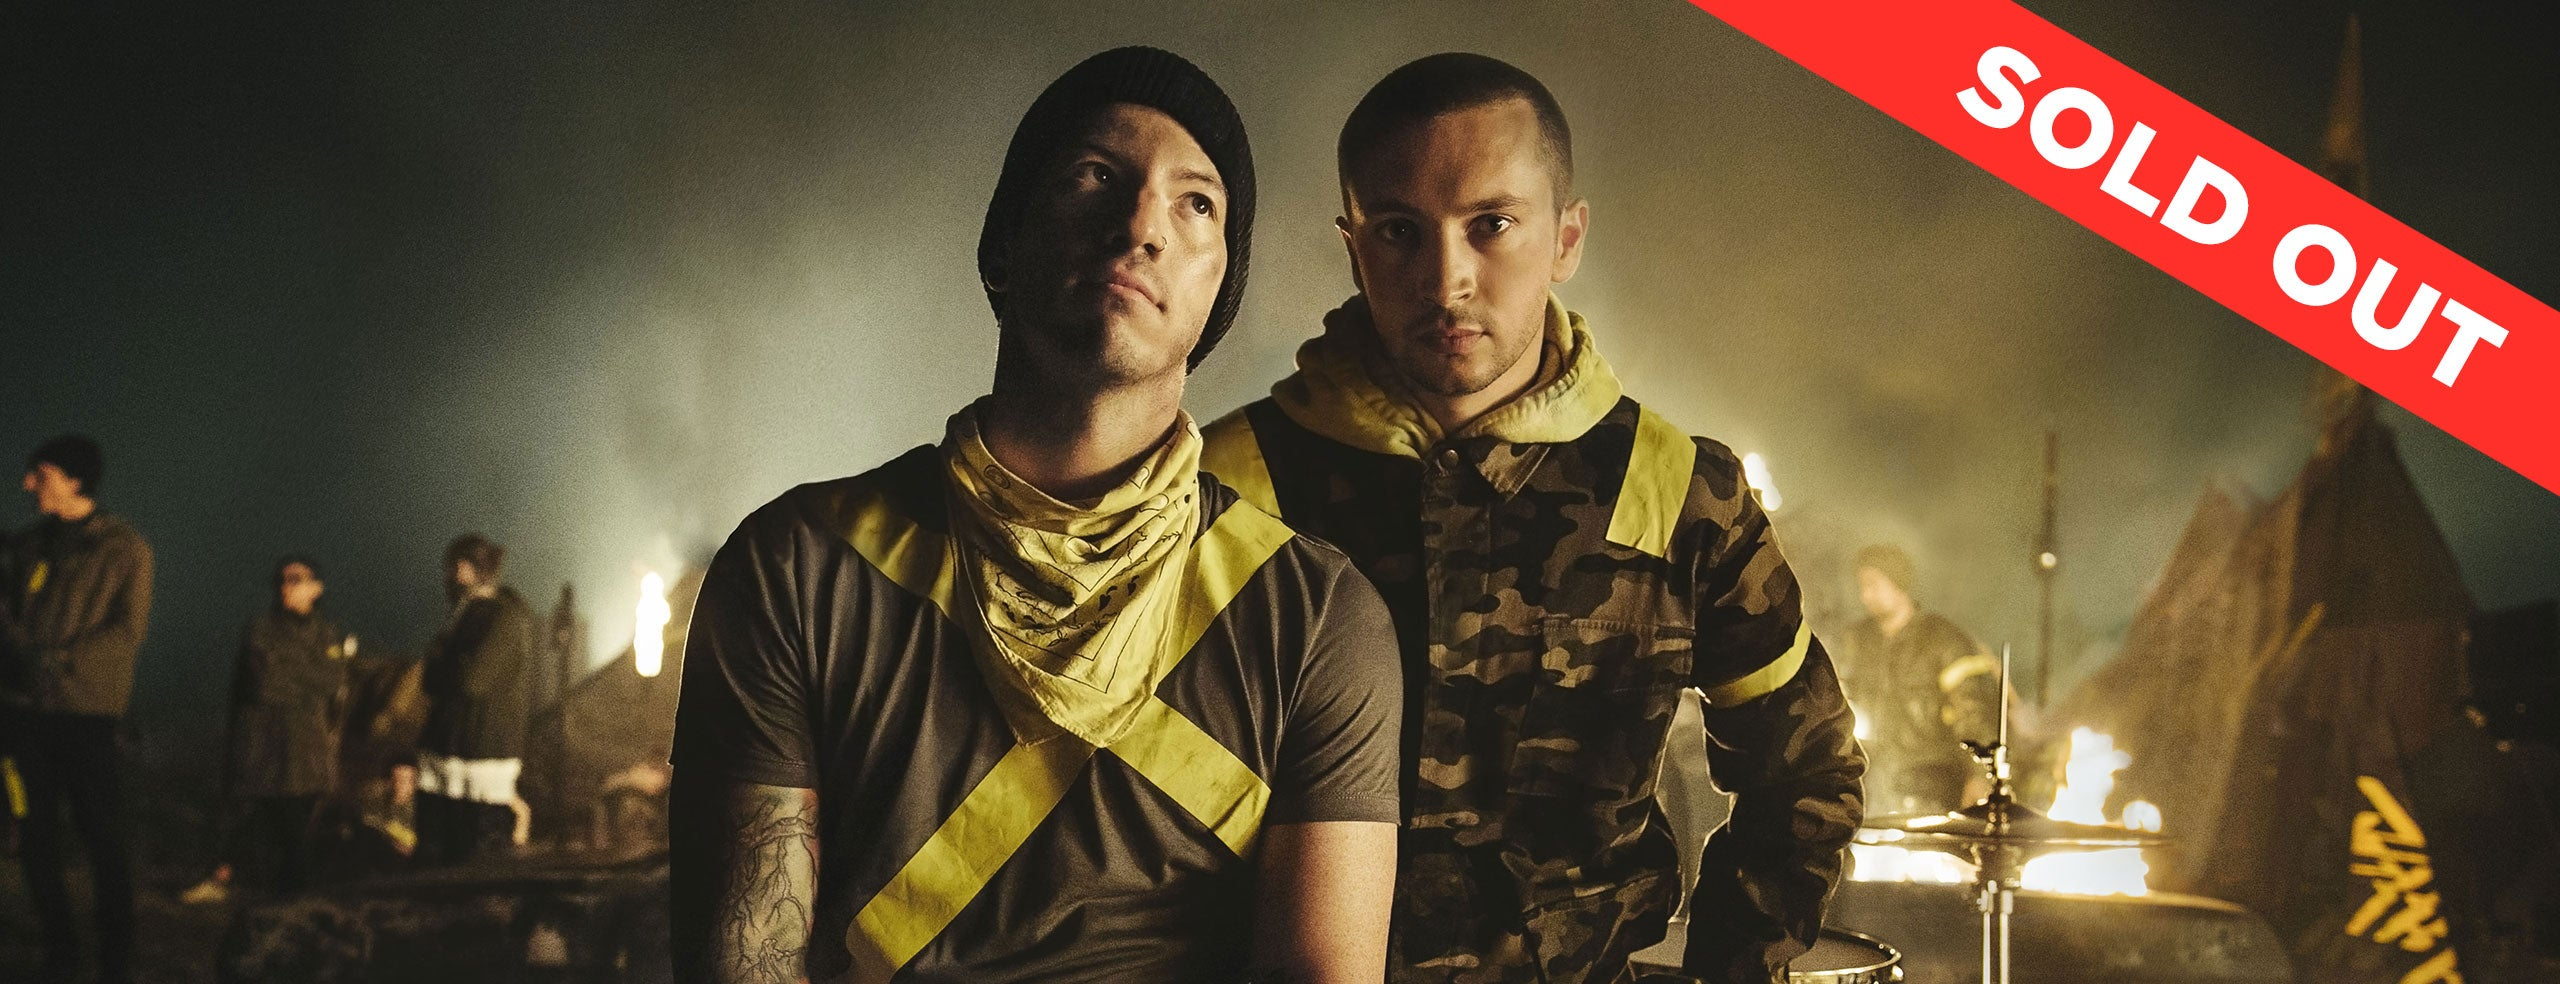 Twenty One Pilots Wallpaper Hd Twenty One Pilots Welcome To Brussels Expo